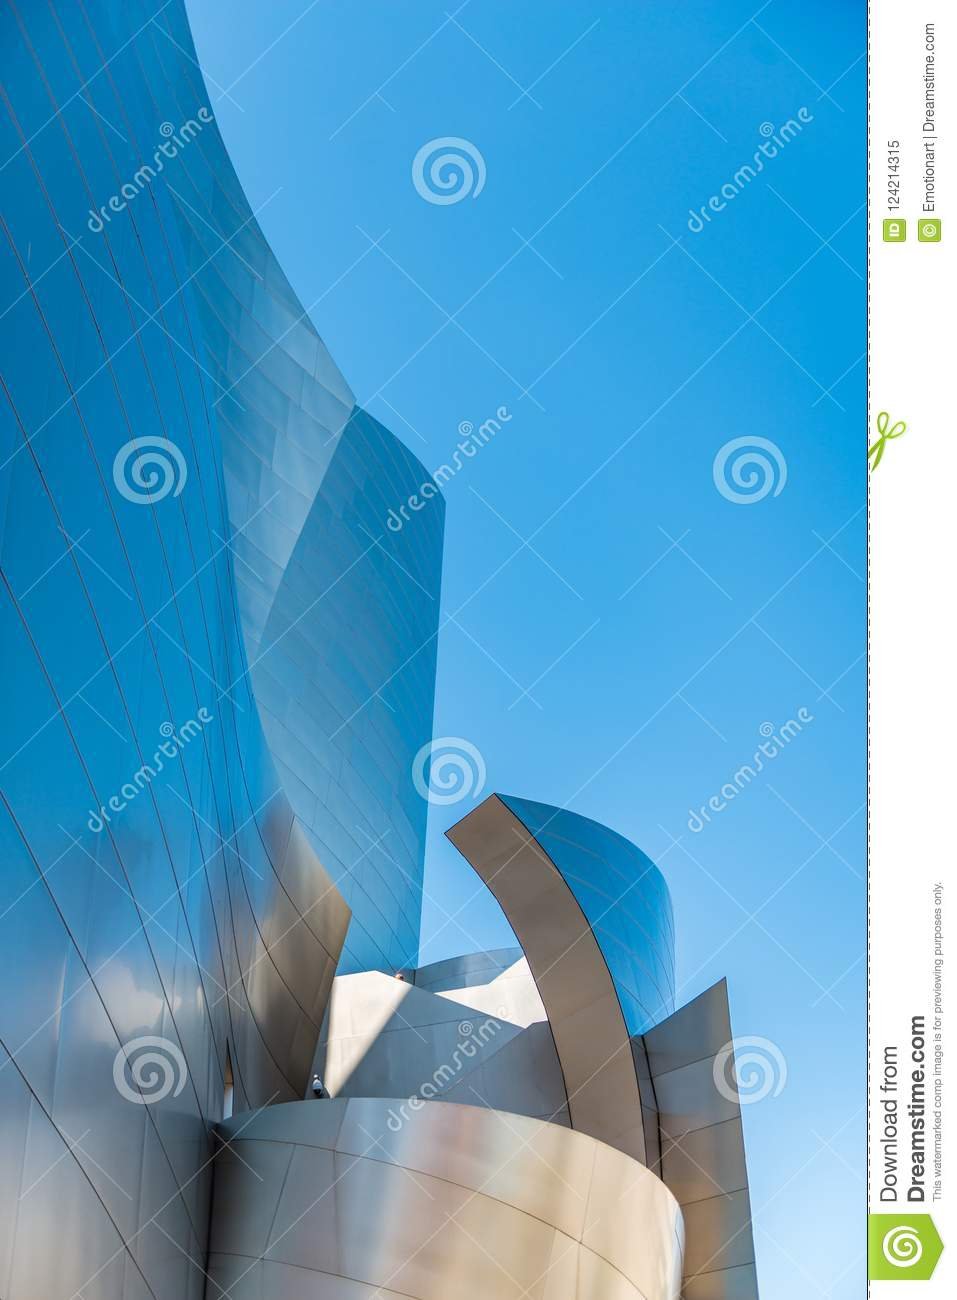 Low-angle of Walt Disney Concert Hall against sky